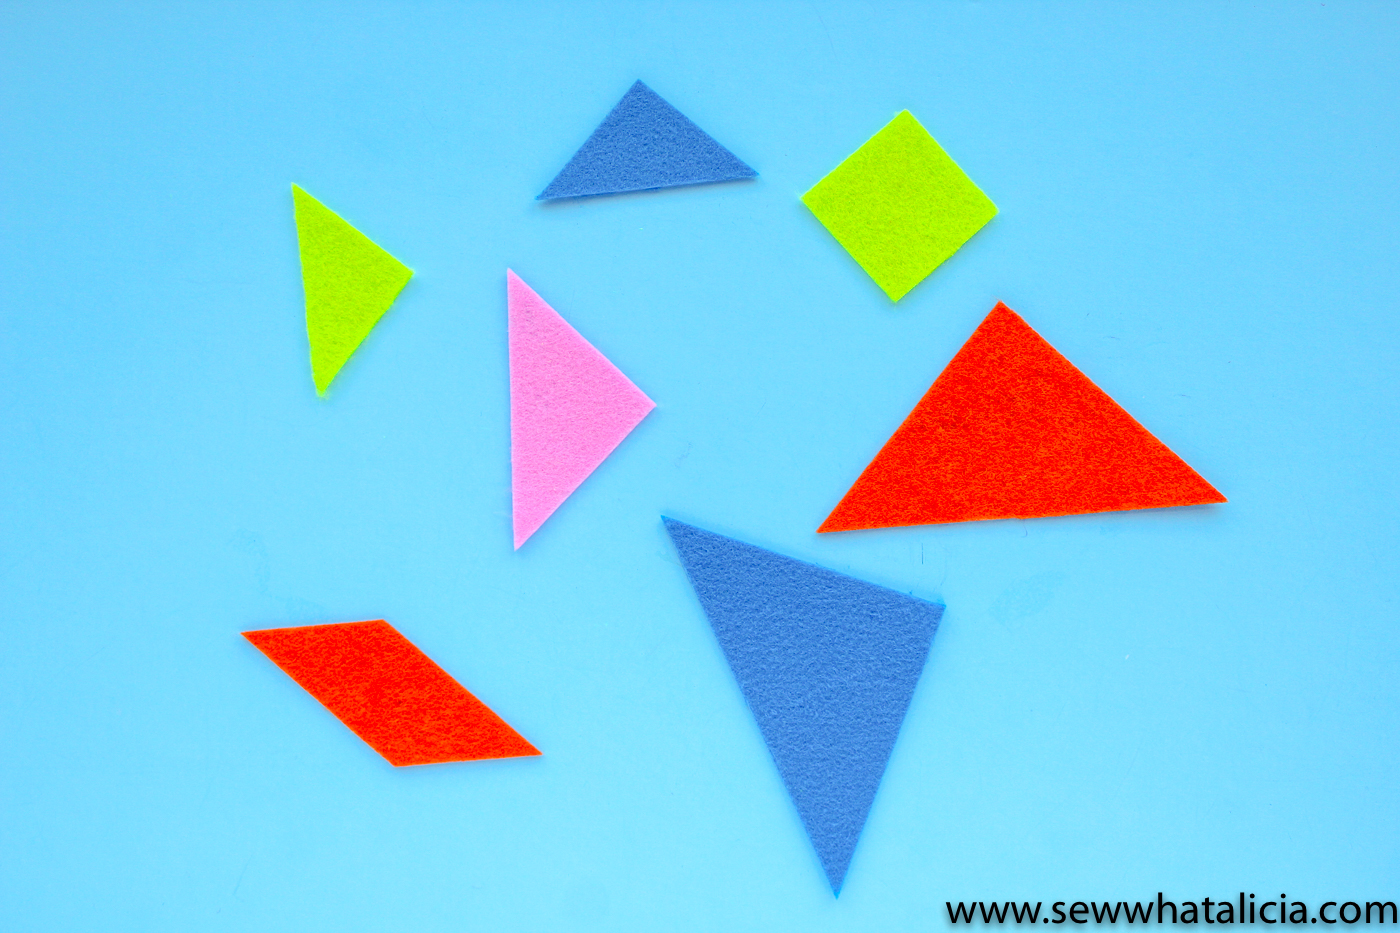 image about Tangram Printable Pdf titled Cuttable and Printable Tangrams PDF - Sew What, Alicia?